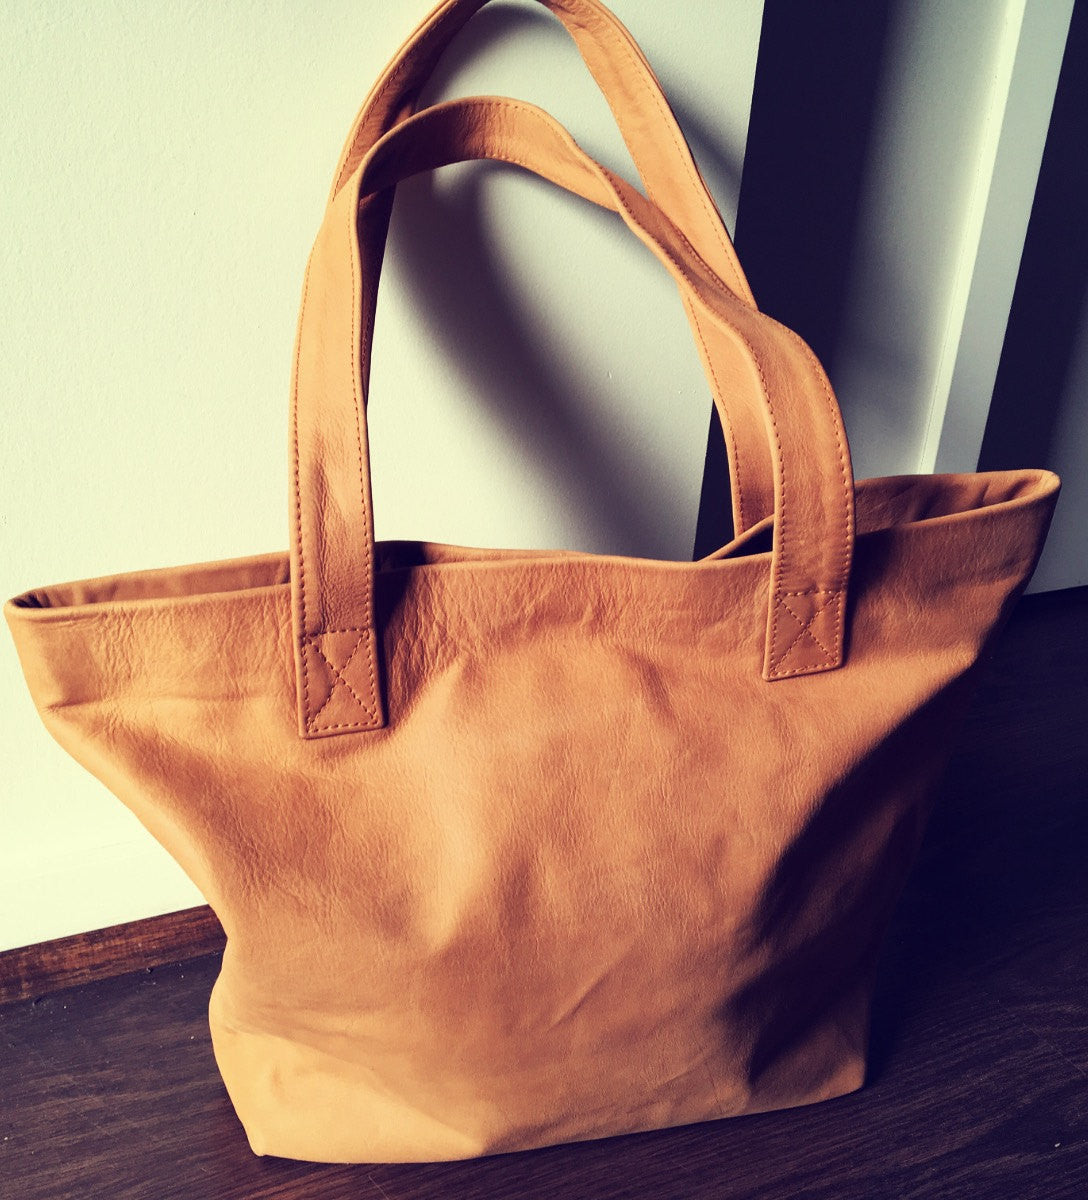 The Angle Tote - Handmade Leather Tote